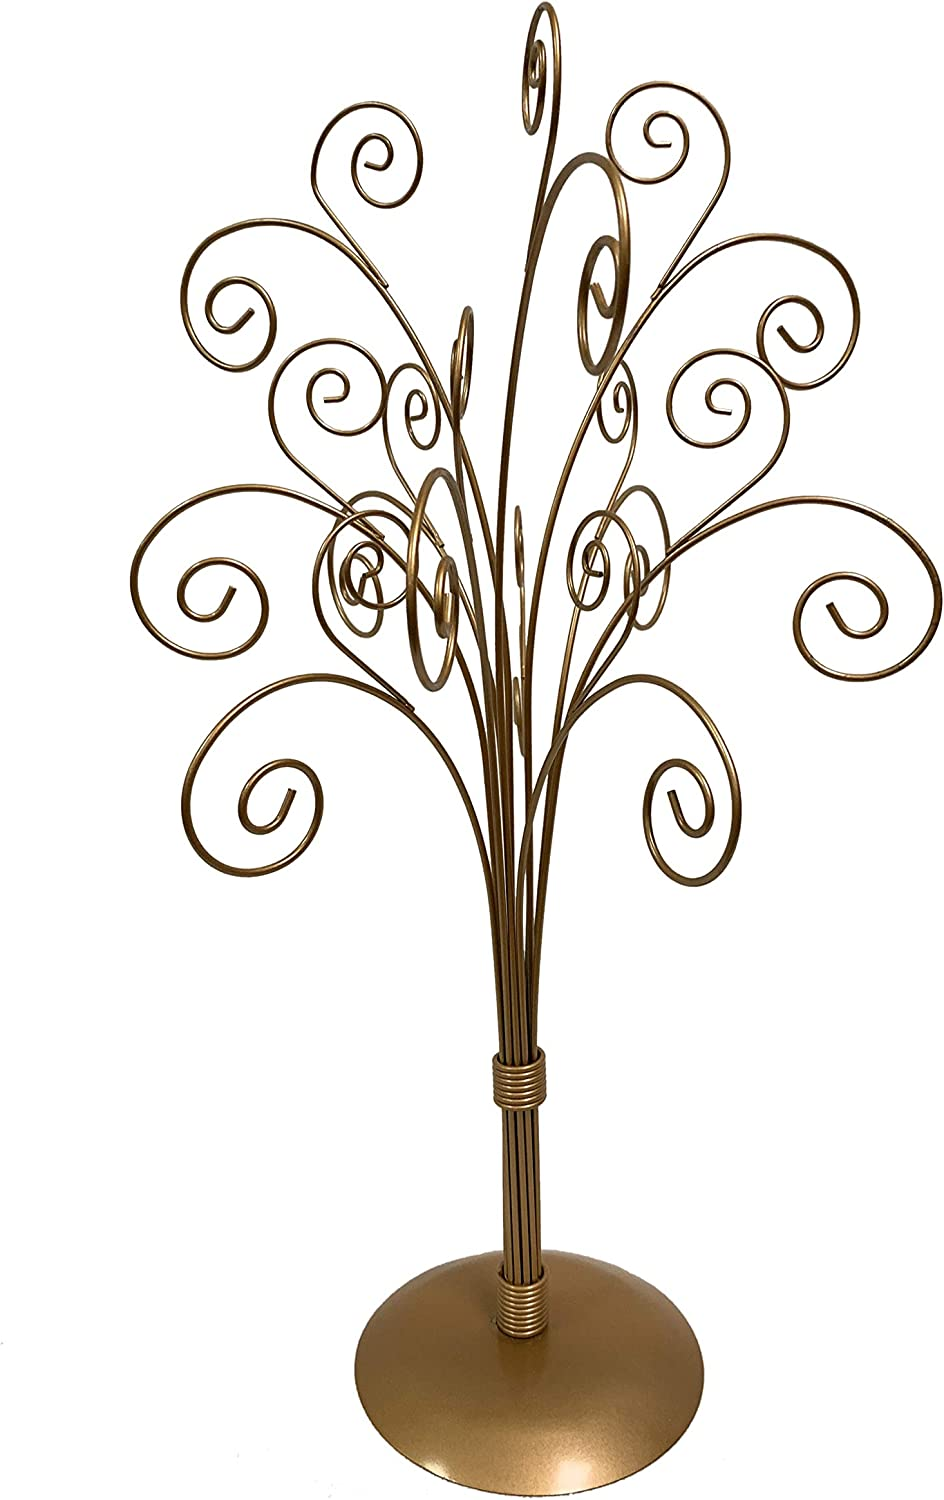 """Tripar Gold Metal Ornament Display Tree and Jewelry Organizer – 16"""" Wire Ornament Stand and Necklace Holder Décor with 11 Arms"""